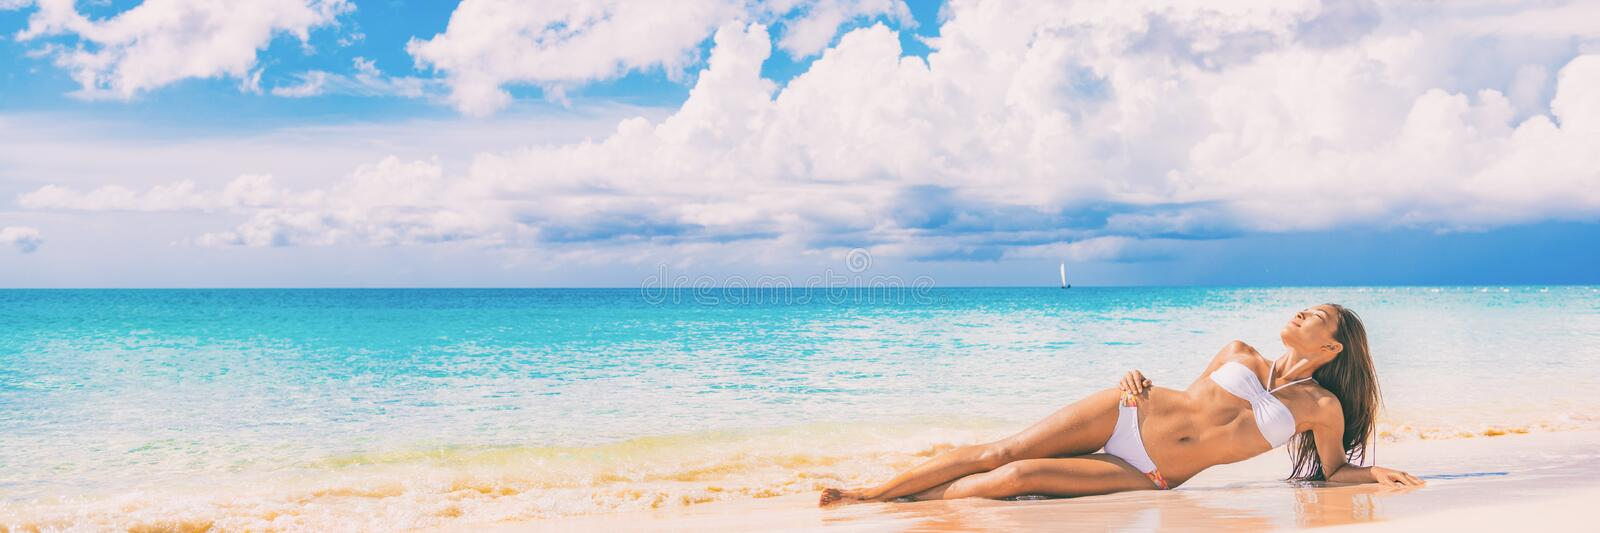 Beach paradise sexy bikini woman lying down on sand relaxing sun tanning in tropical caribbean travel destination for. Summer vacation. Panoramic banner stock photo